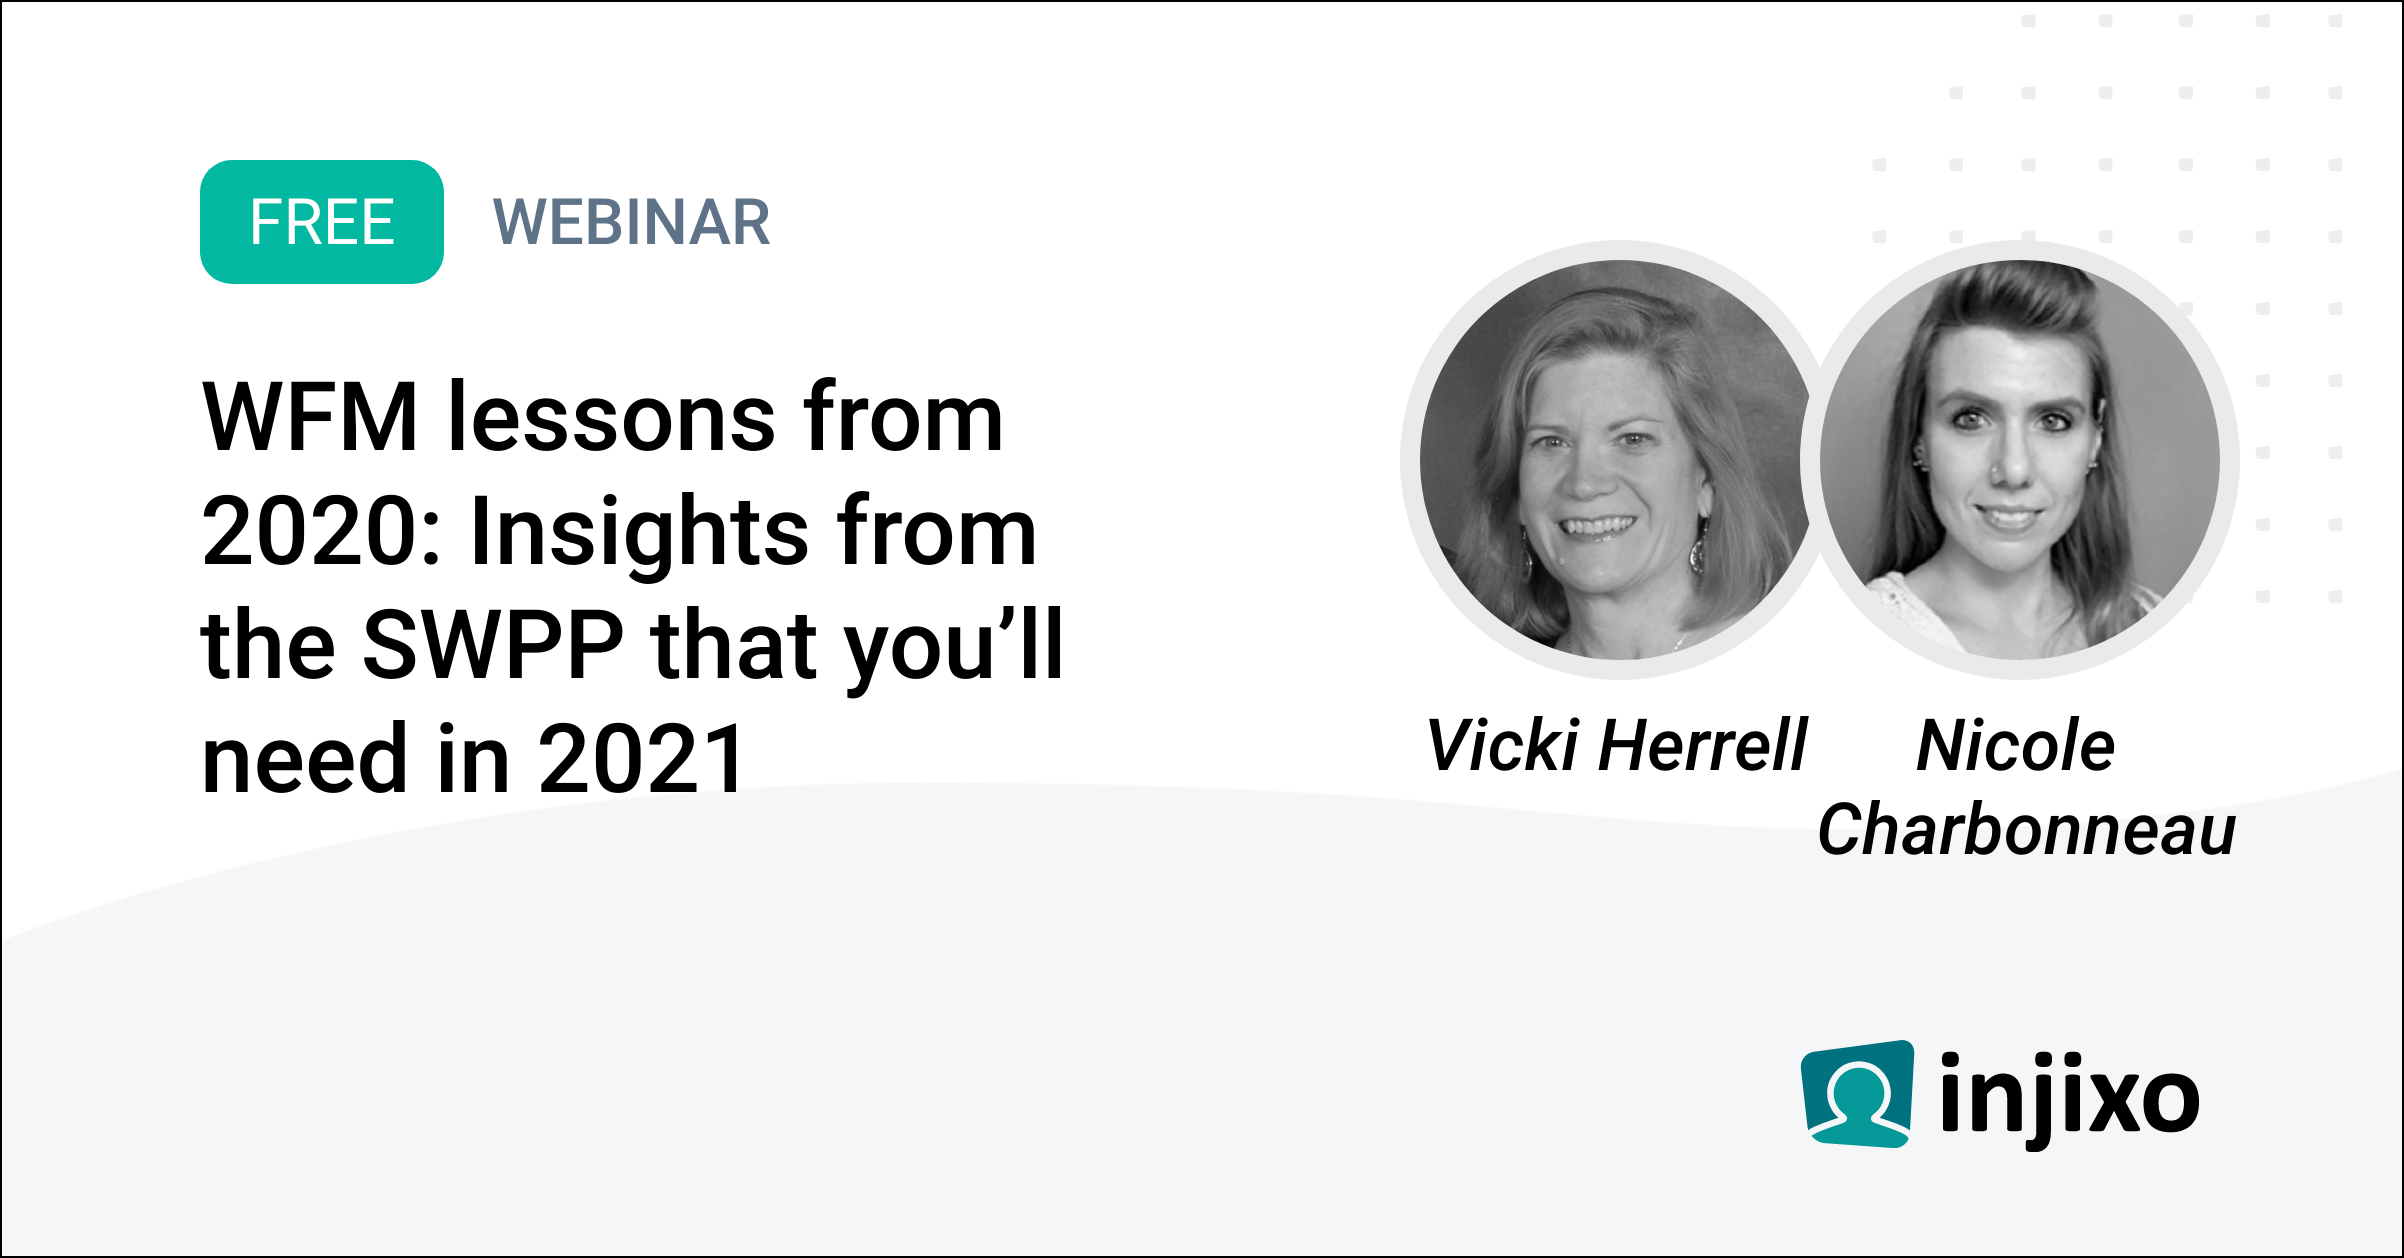 injixo-webinar-wfm-lessons-from-2020-insights-from-the-swpp-that-youll-need-in-2021